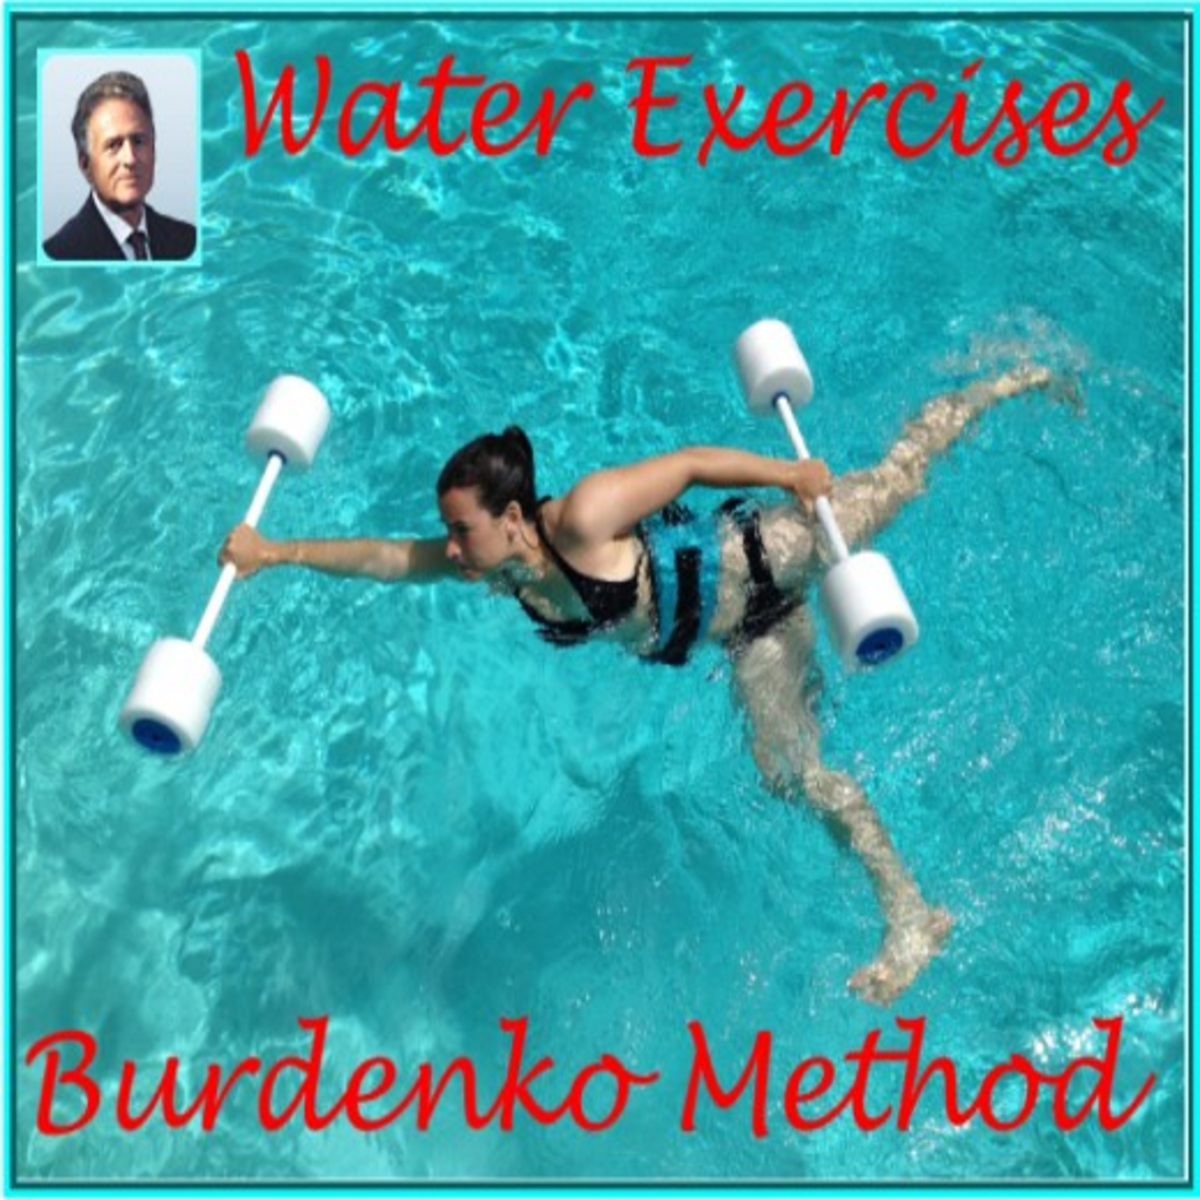 Water Exercises With the Burdenko Method